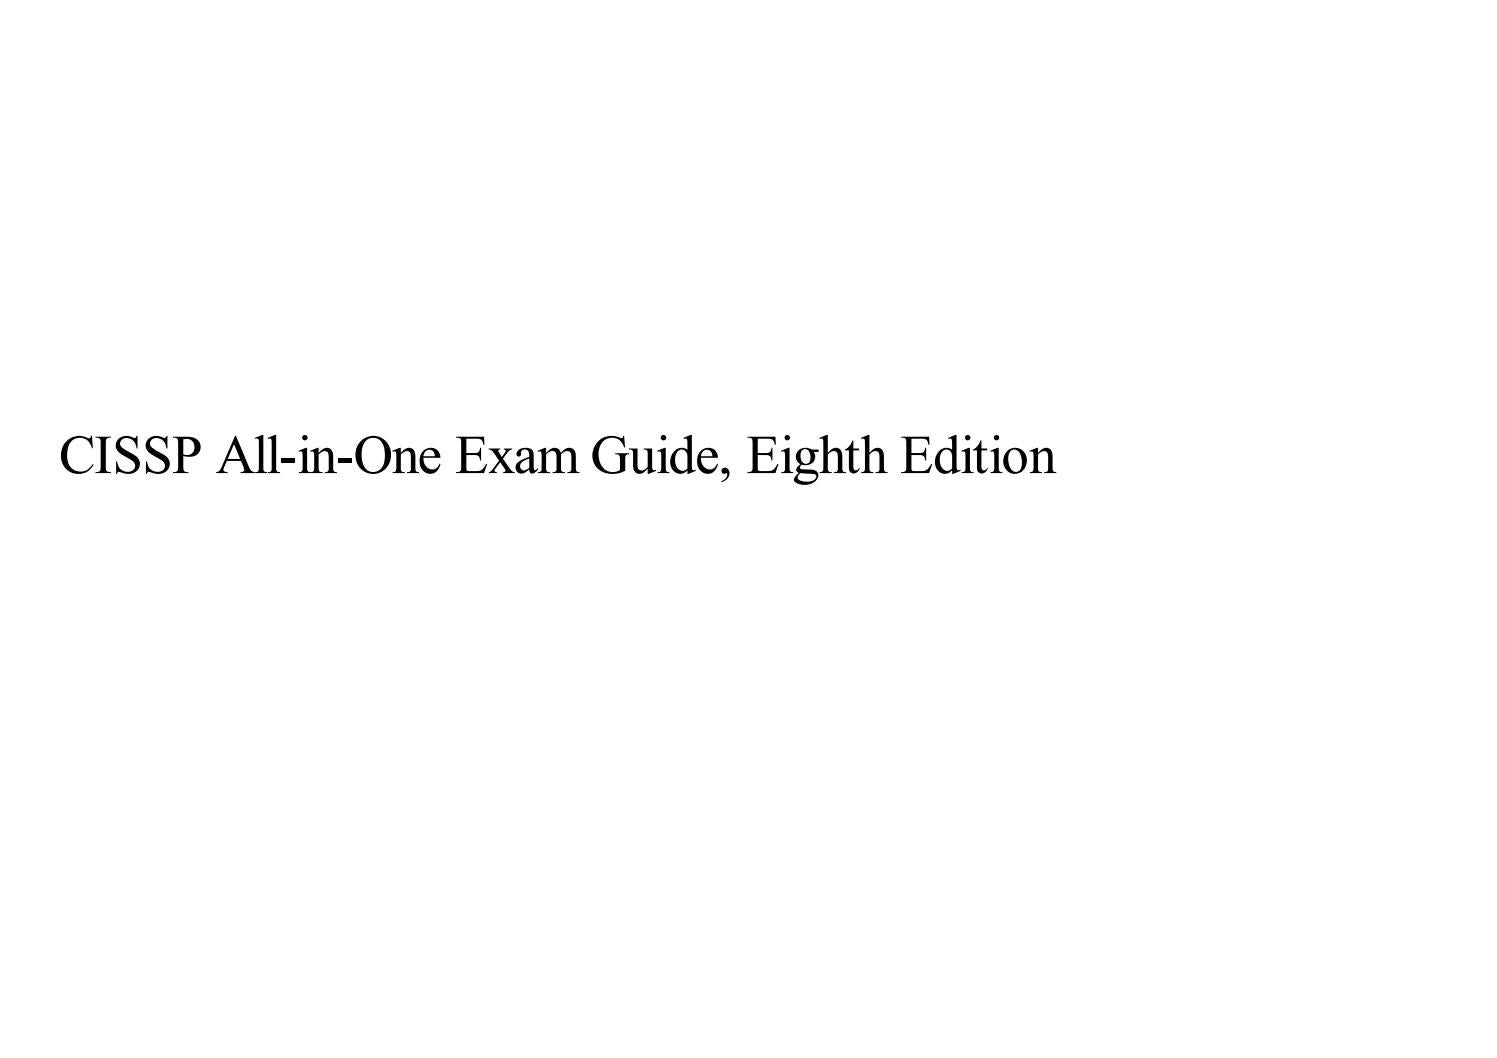 CISSP All-in-One Exam Guide, Eighth Edition by flowersisterq